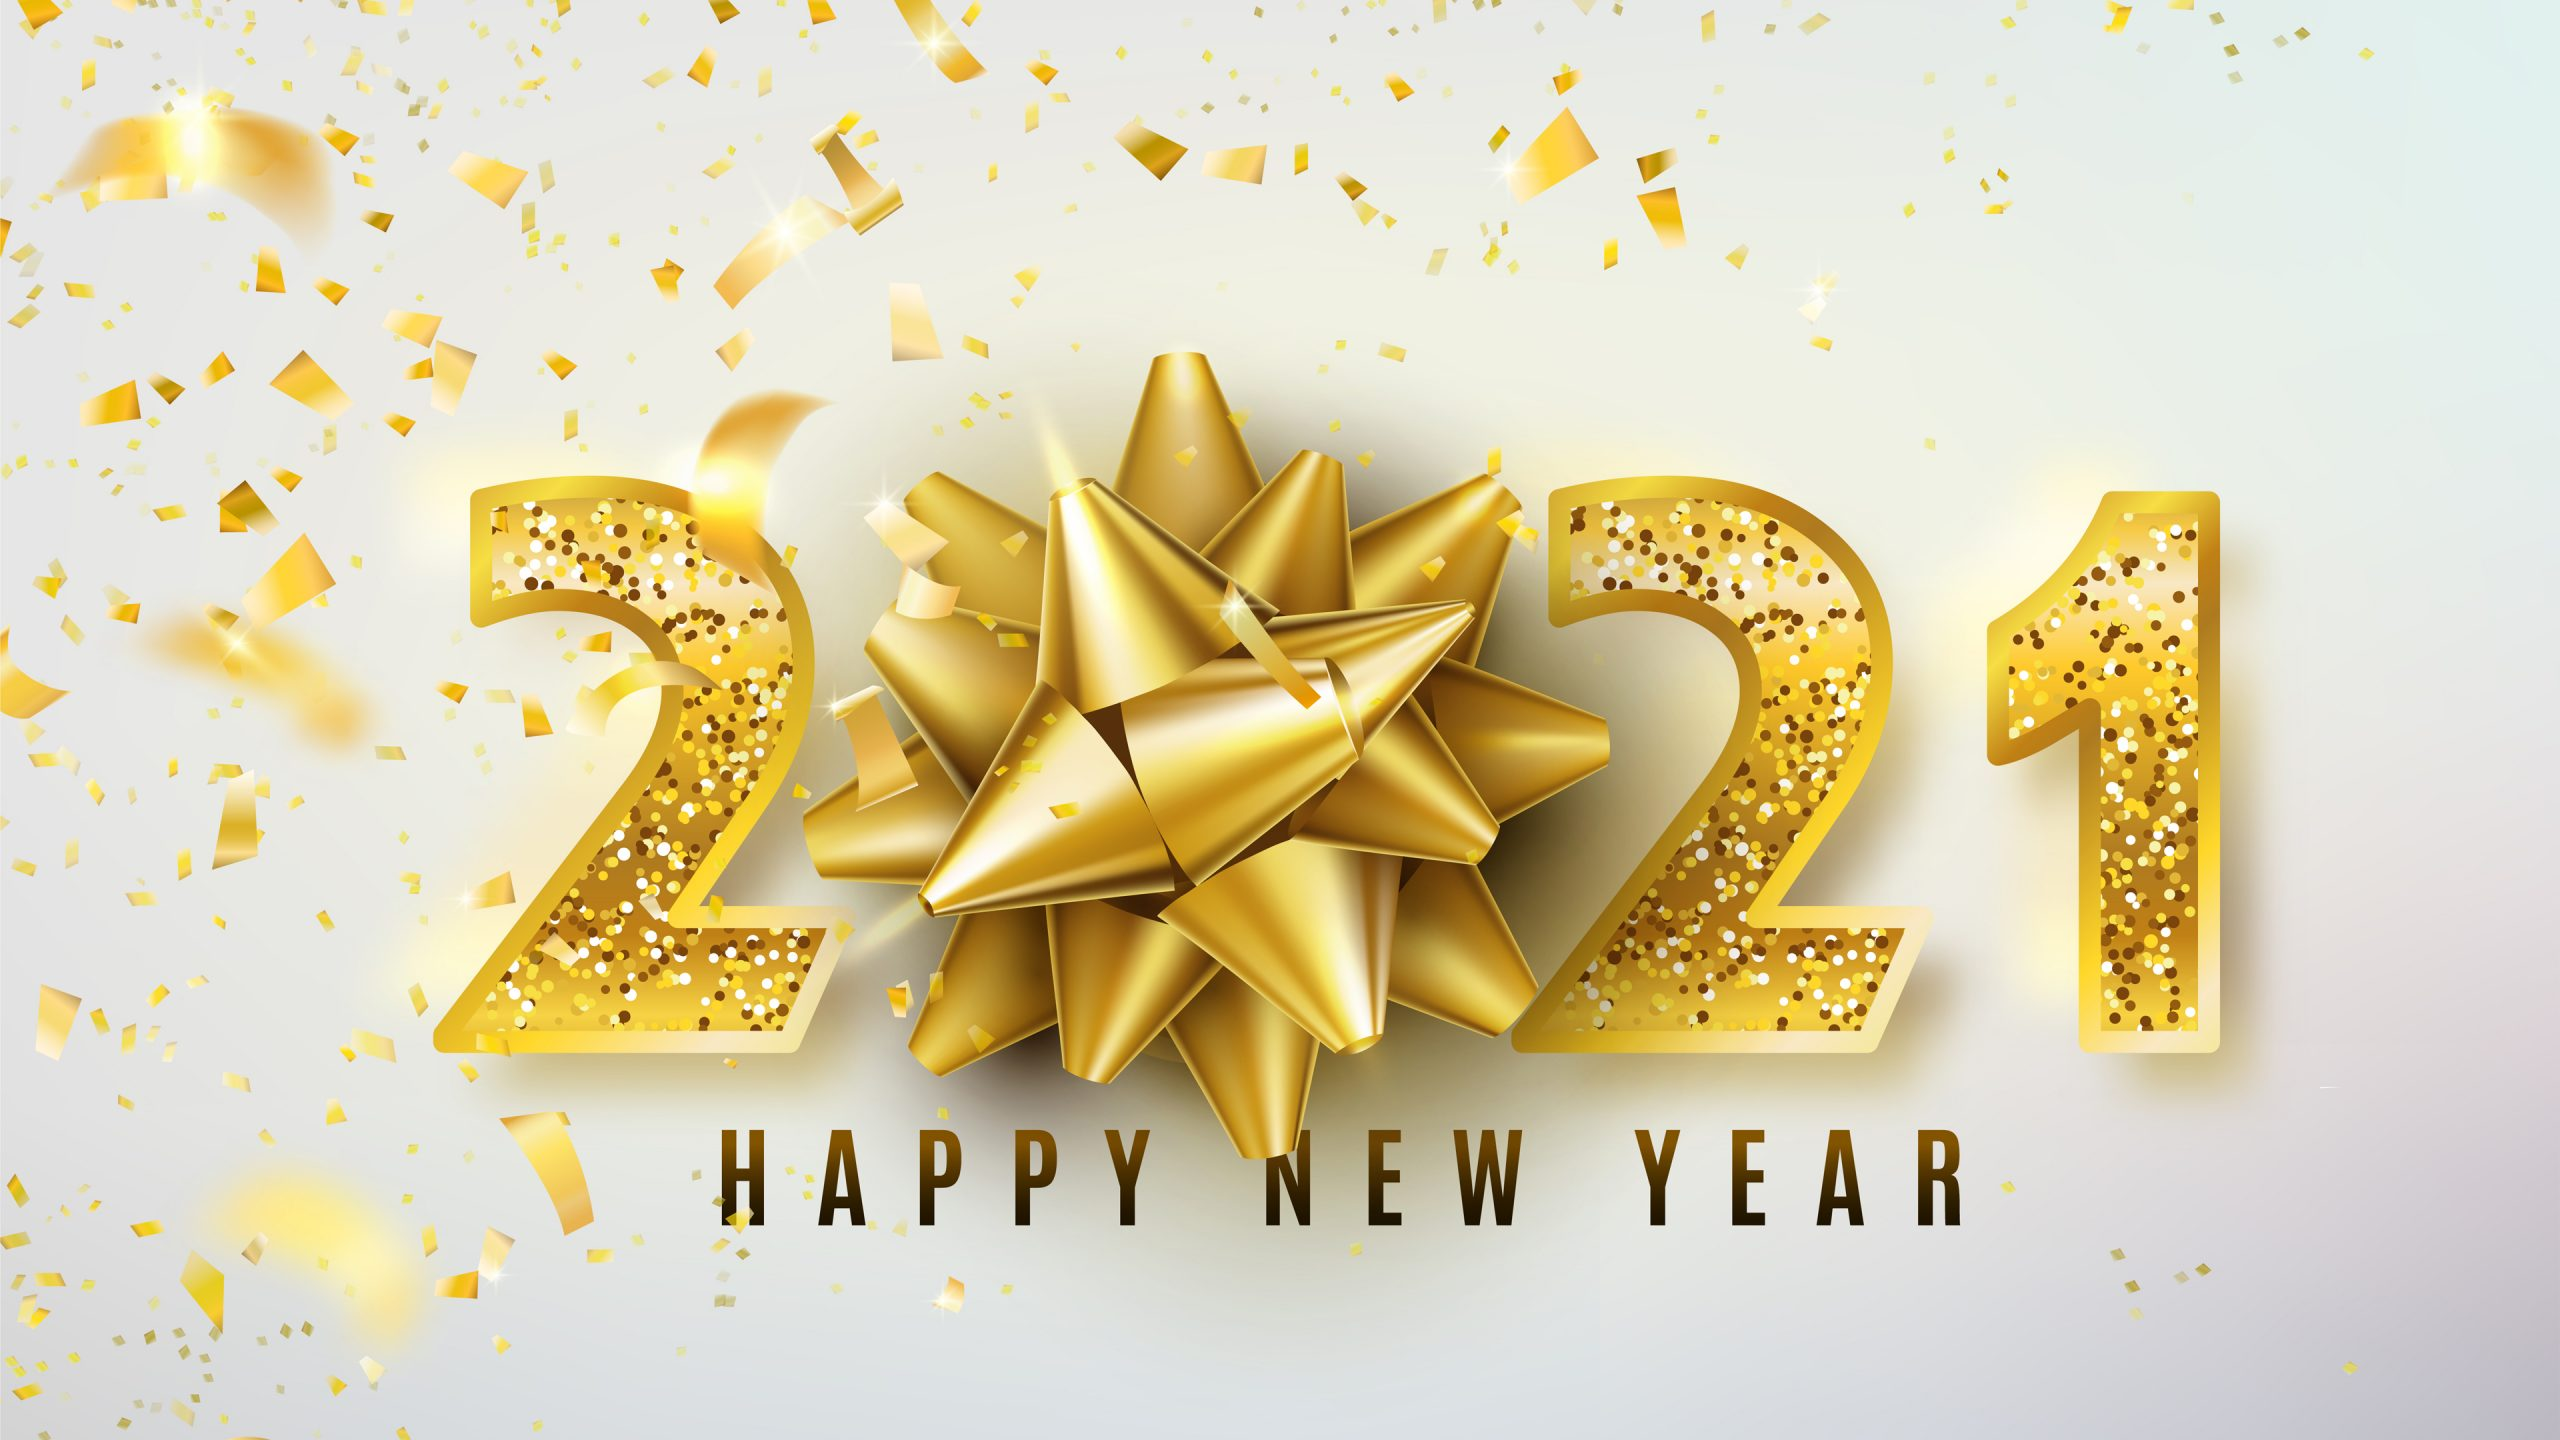 Happy New Year HD Image